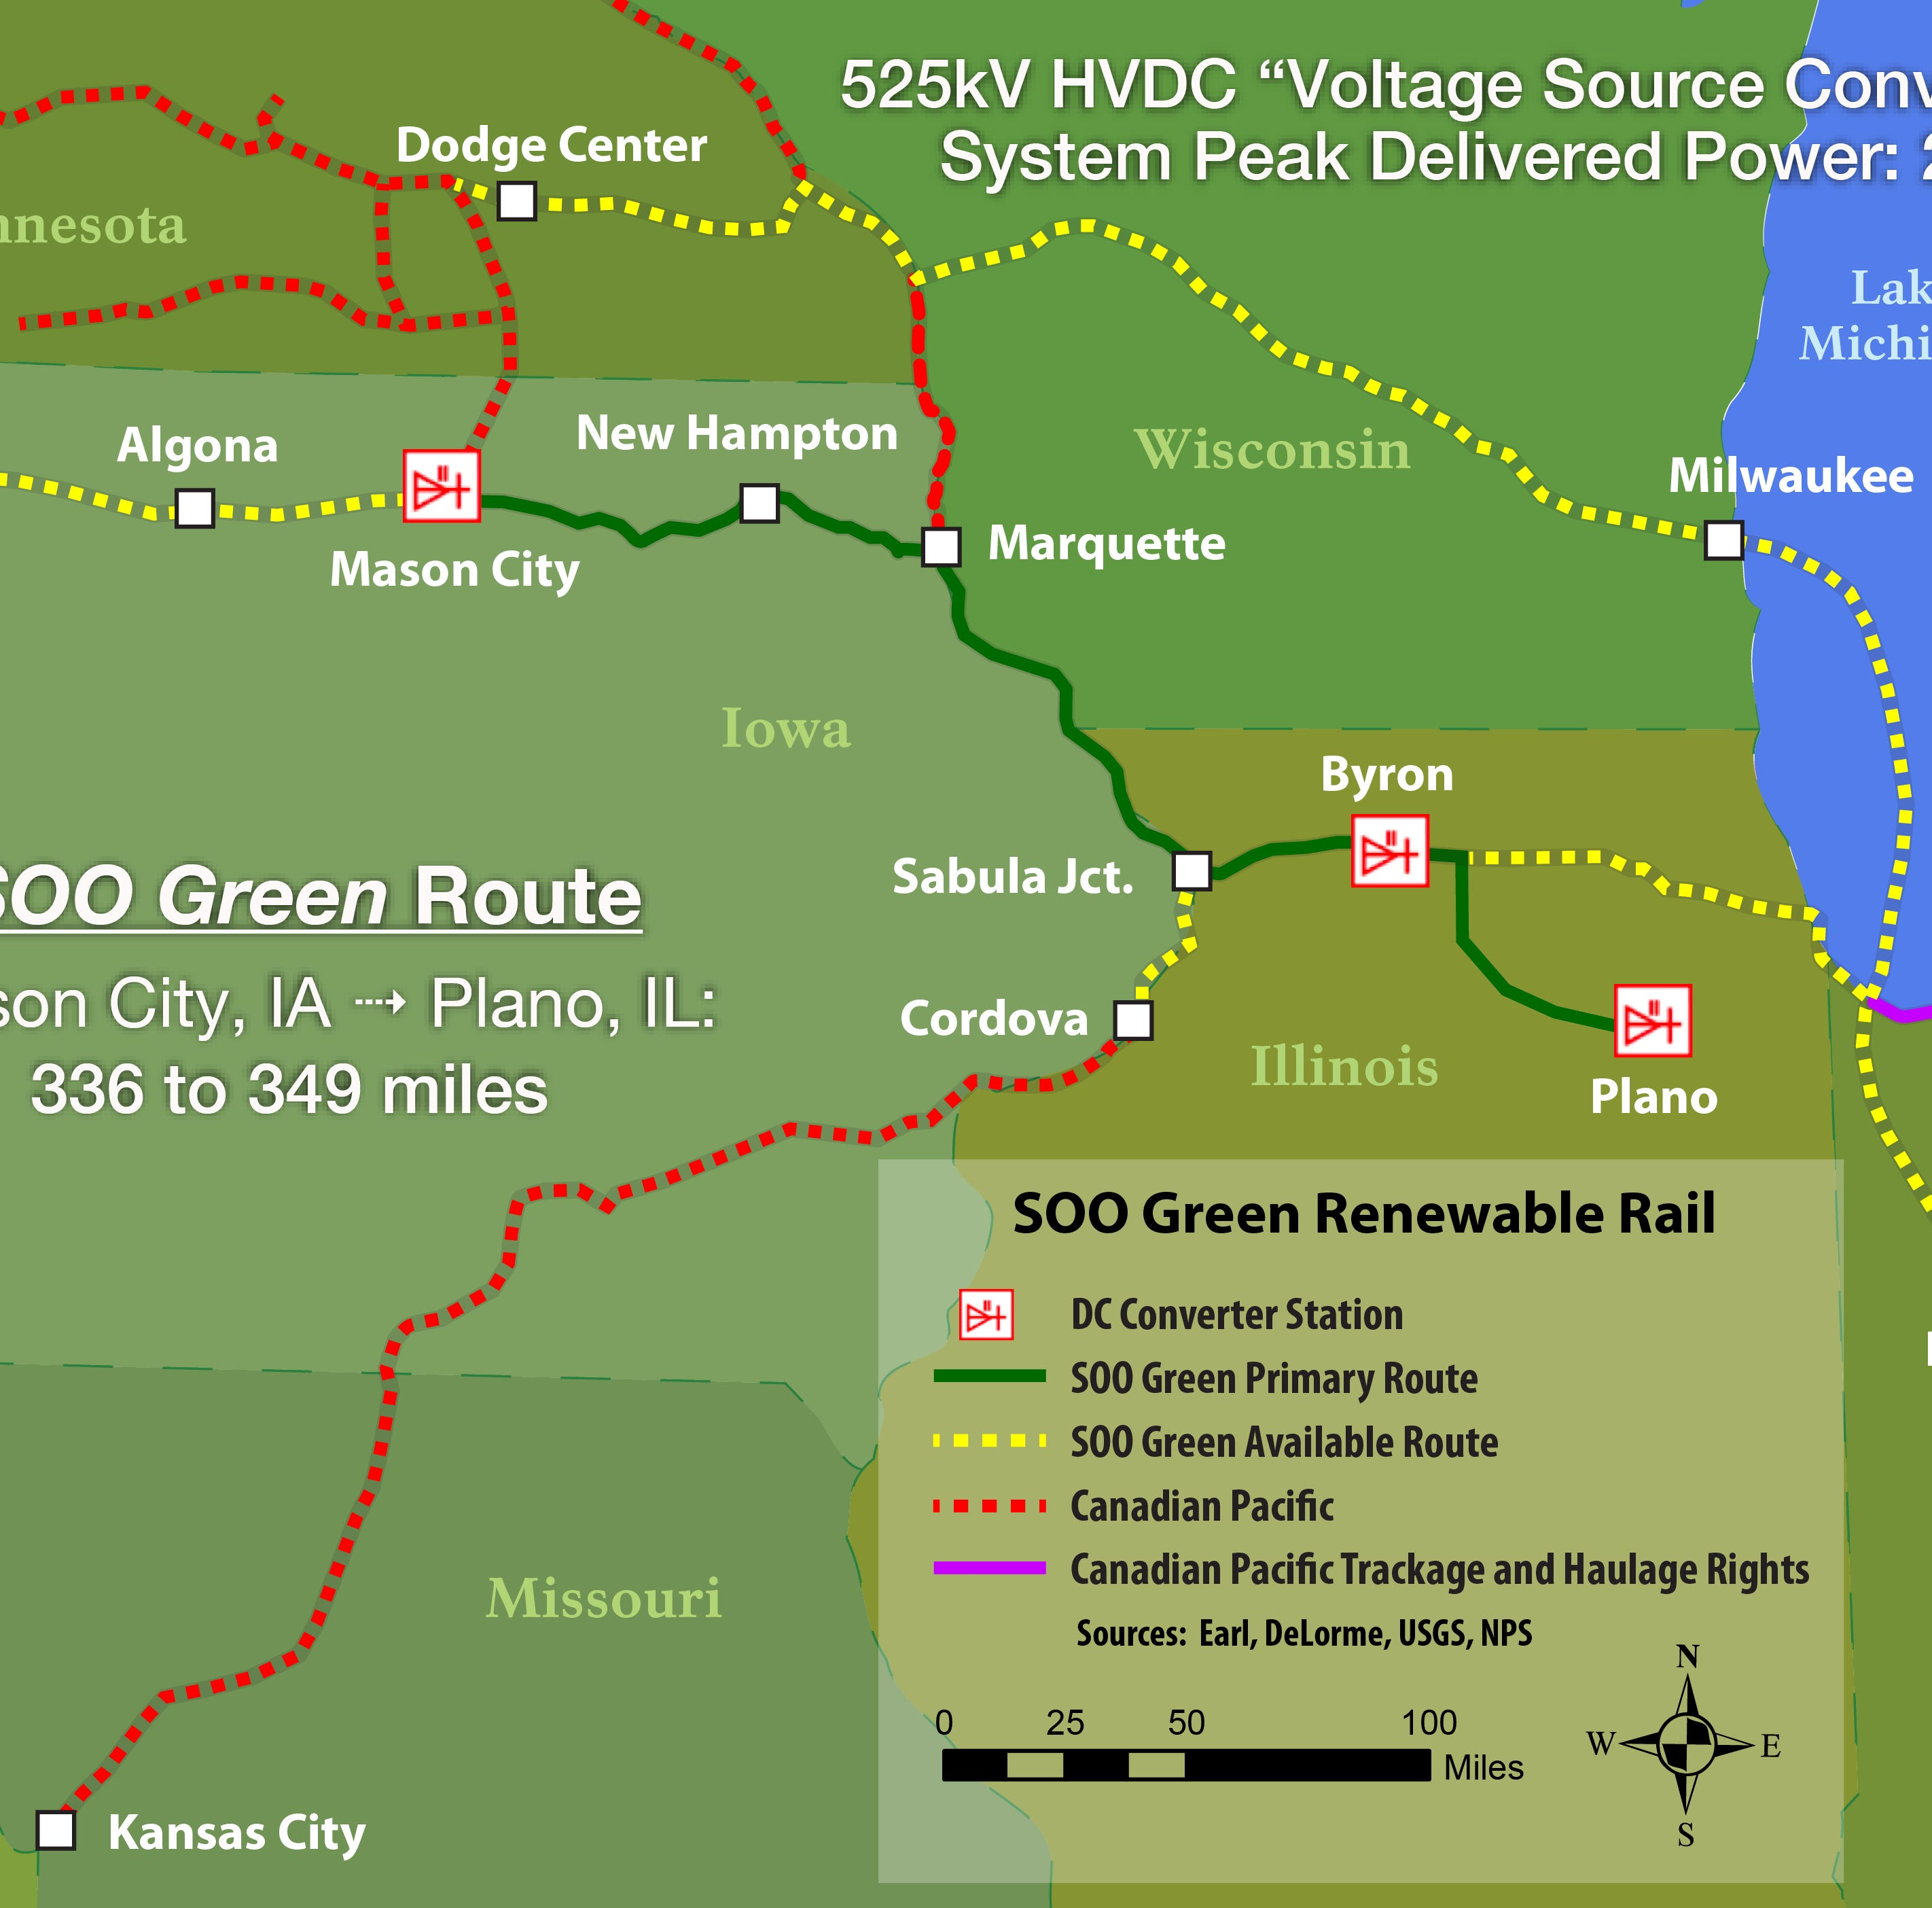 Developer proposes a 350-mile underground transmission line to carry wind energy from rural Iowa to Chicago